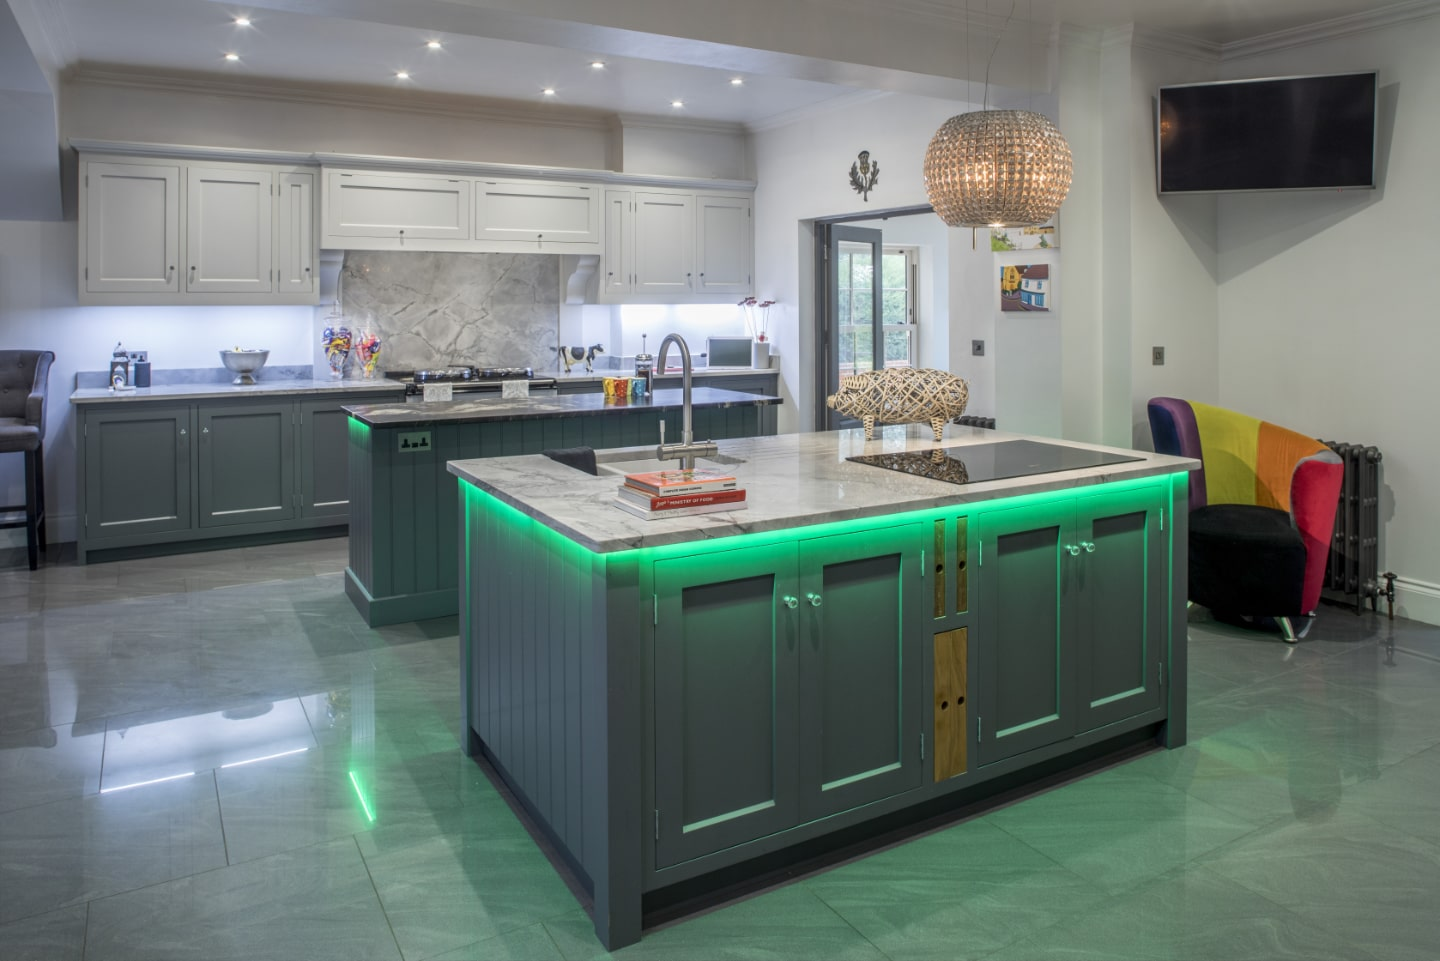 A bespoke kitchen with custom, green LED lighting under the work tops.